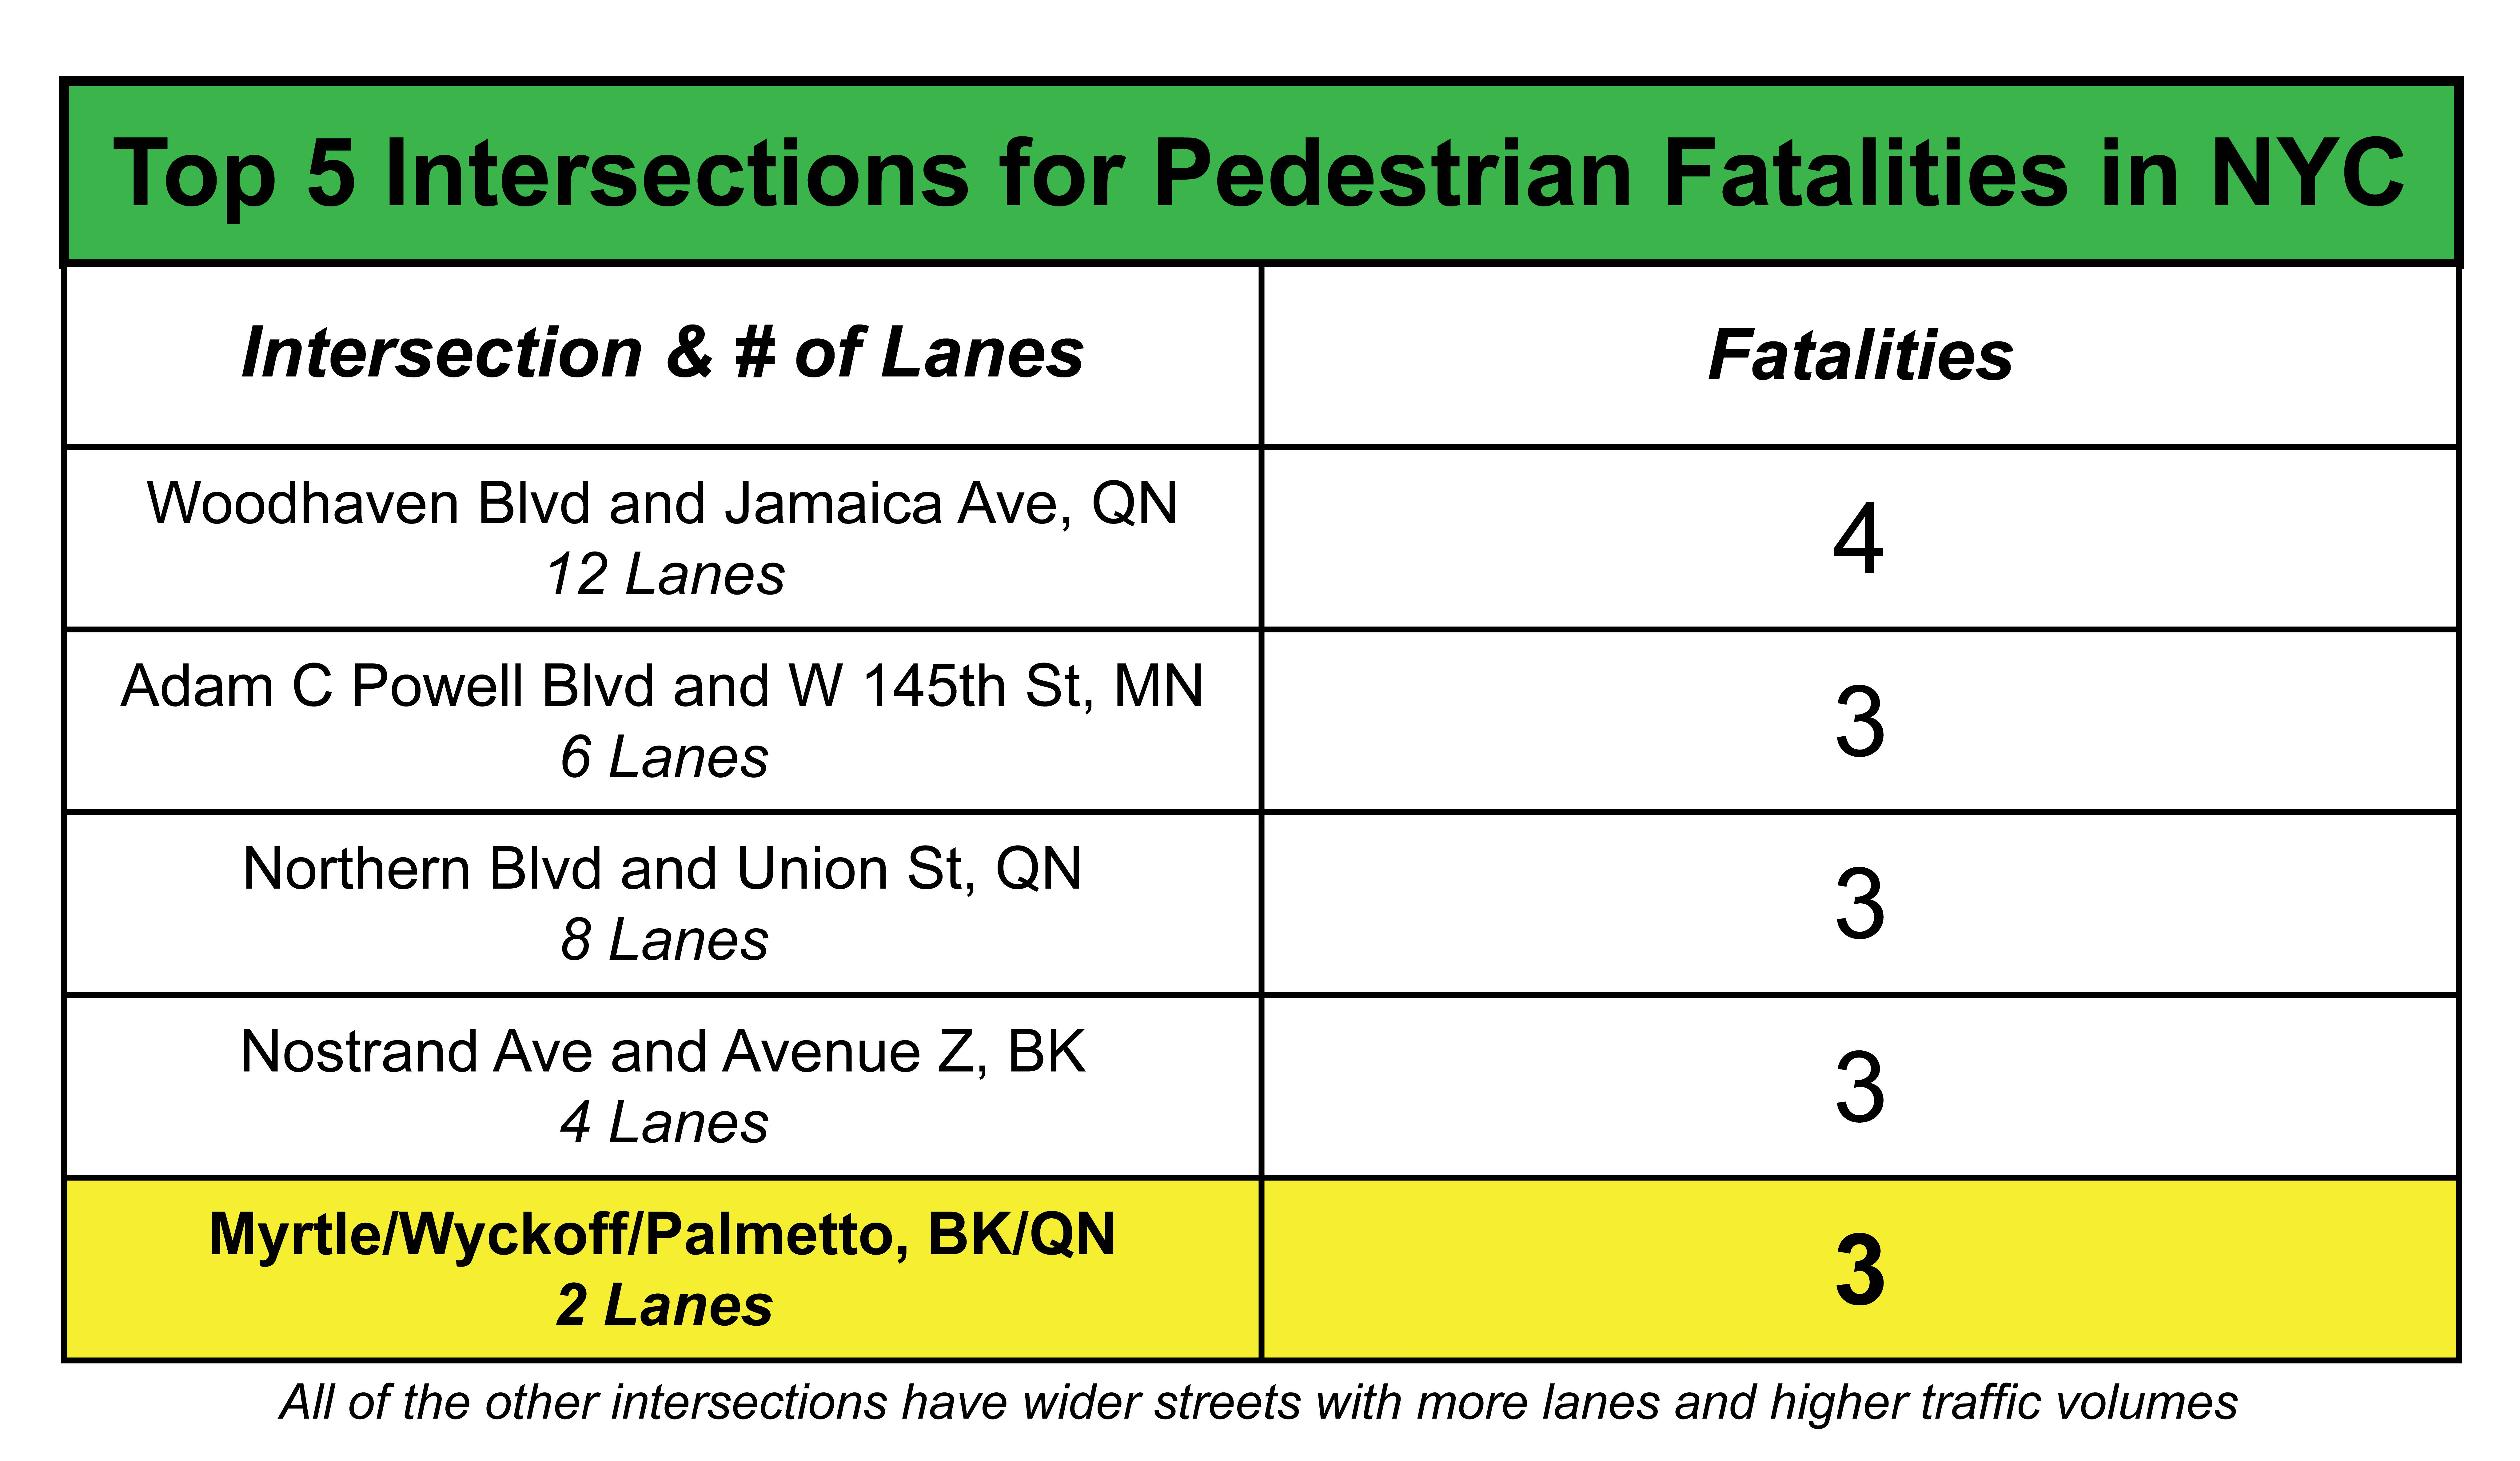 A chart detailing the Top 5 intersections for pedestrian fatalities between 2010 and 2014. Myrtle-Wyckoff is tied for 2nd with 3 fatalities within the specified years.